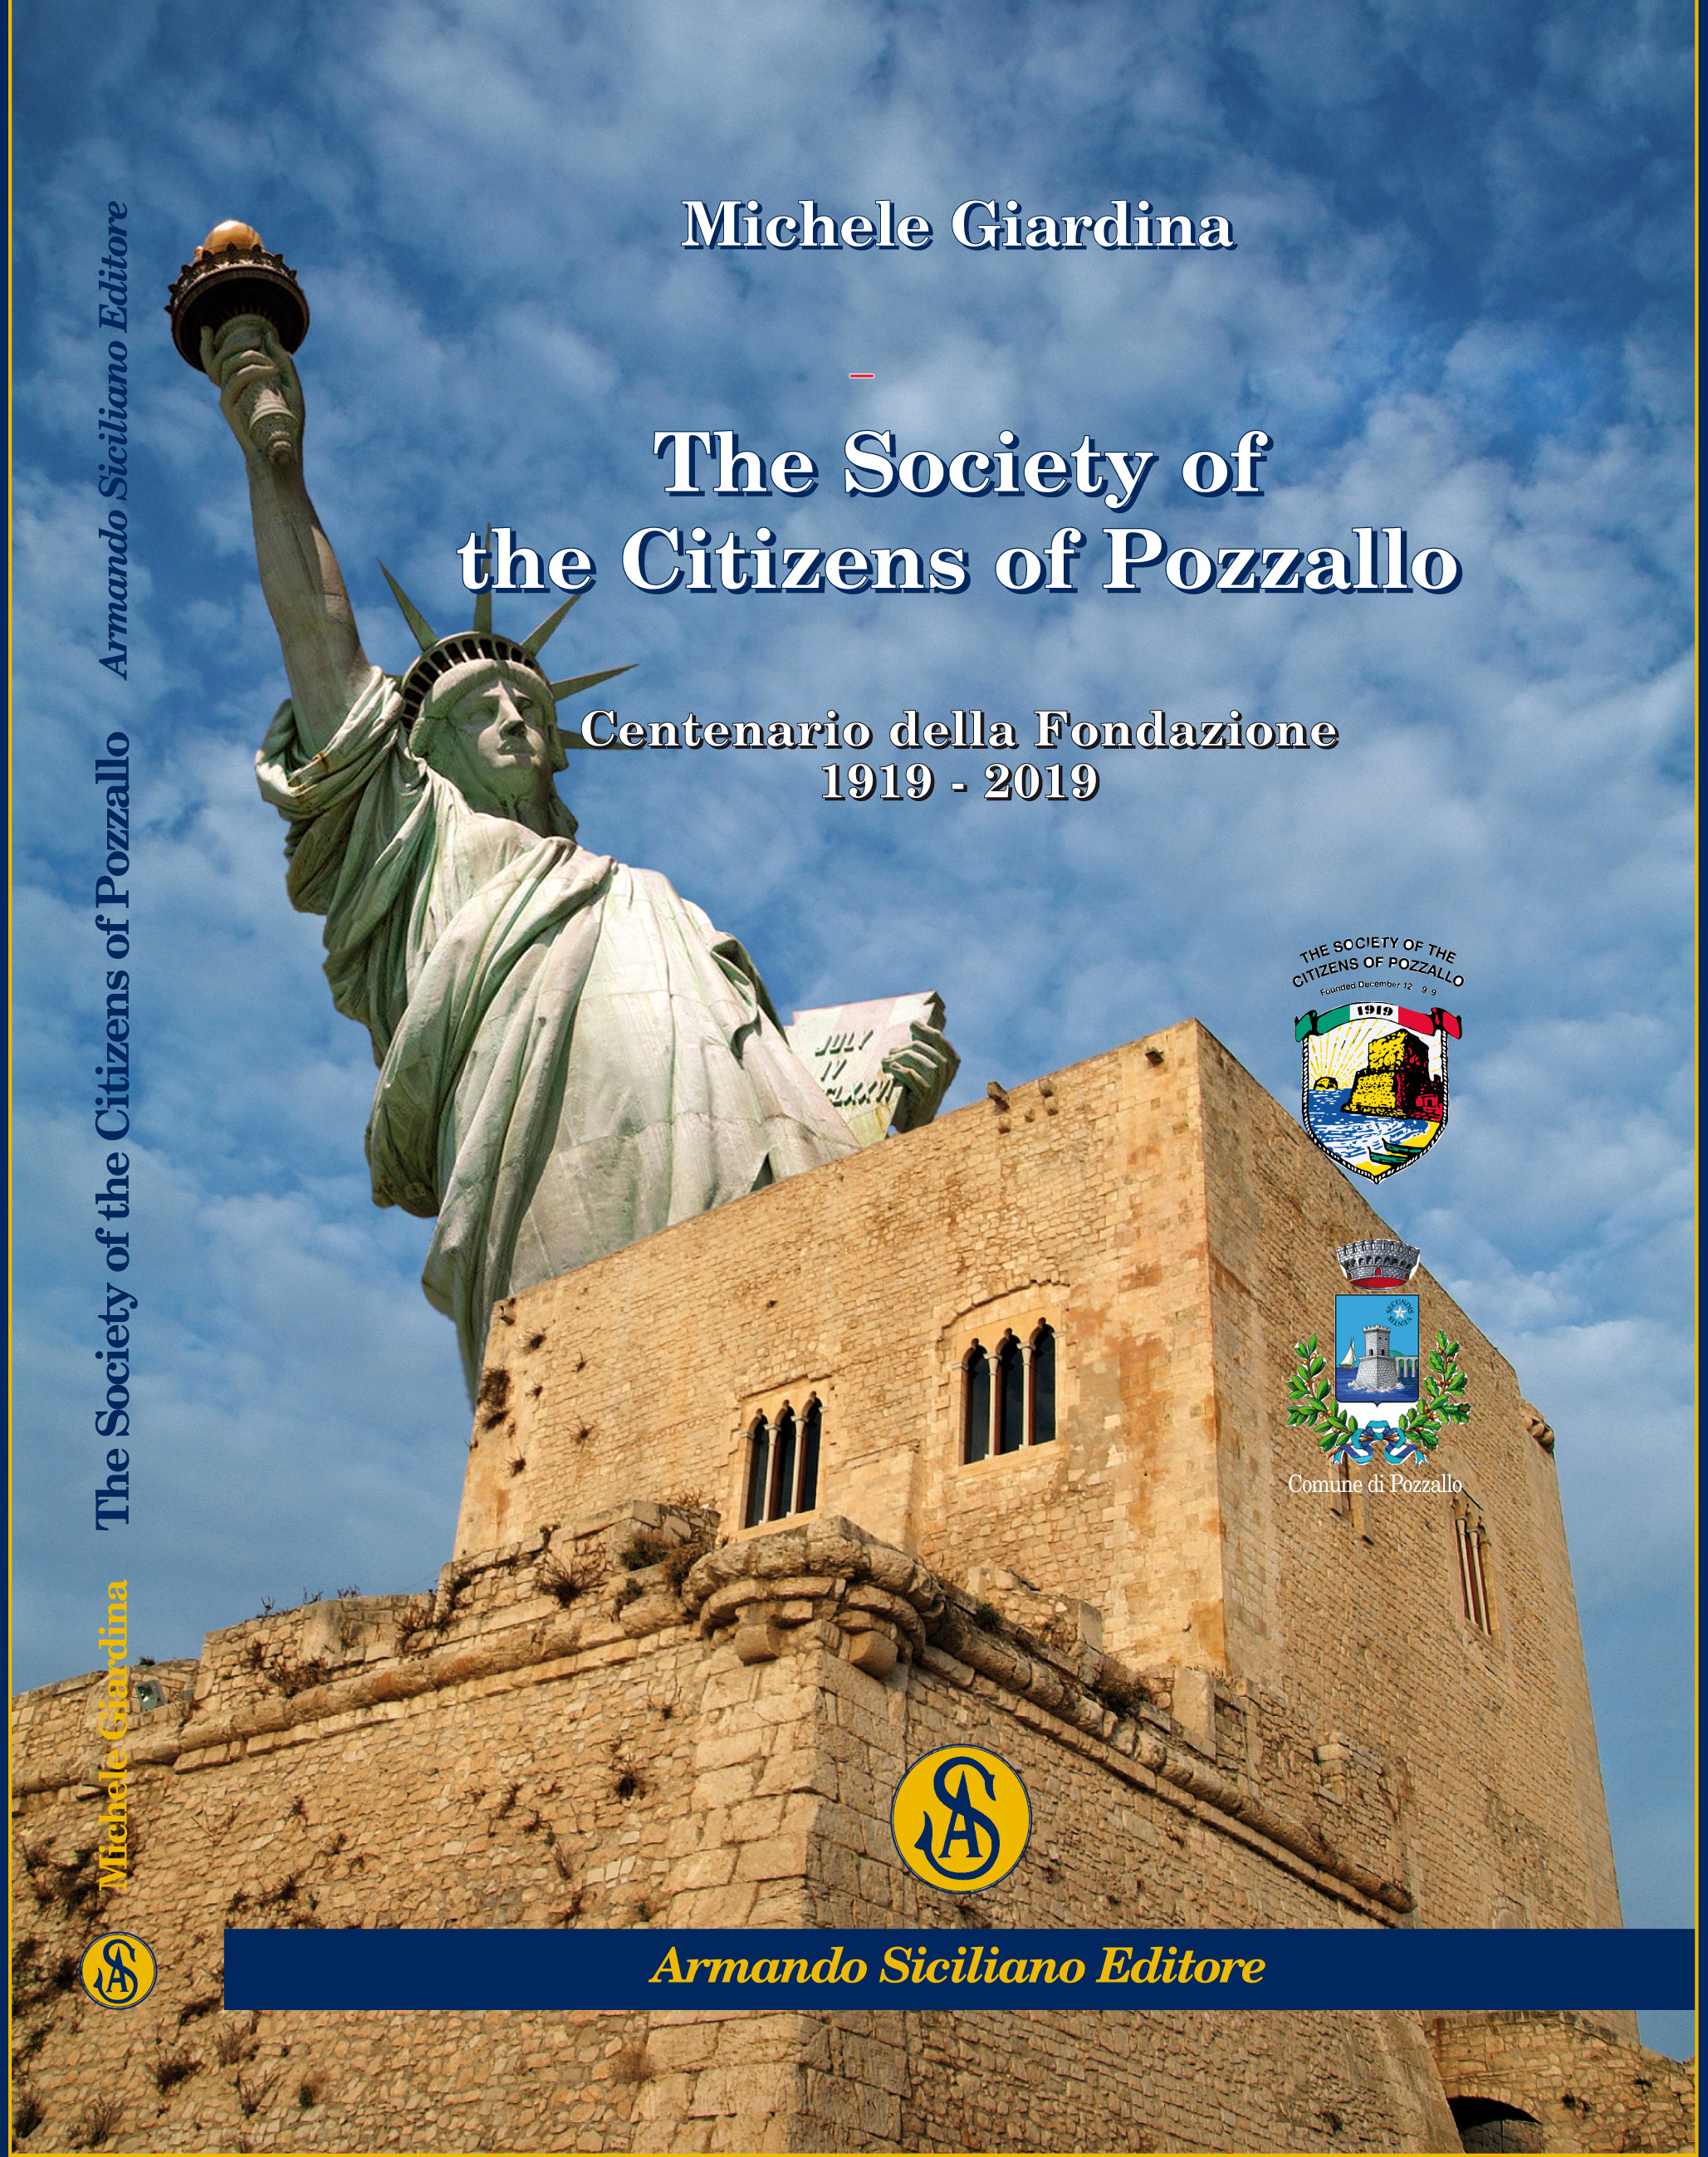 The Society of the Citizens of Pozzallo. Centenario della Fondazione 1919-2019